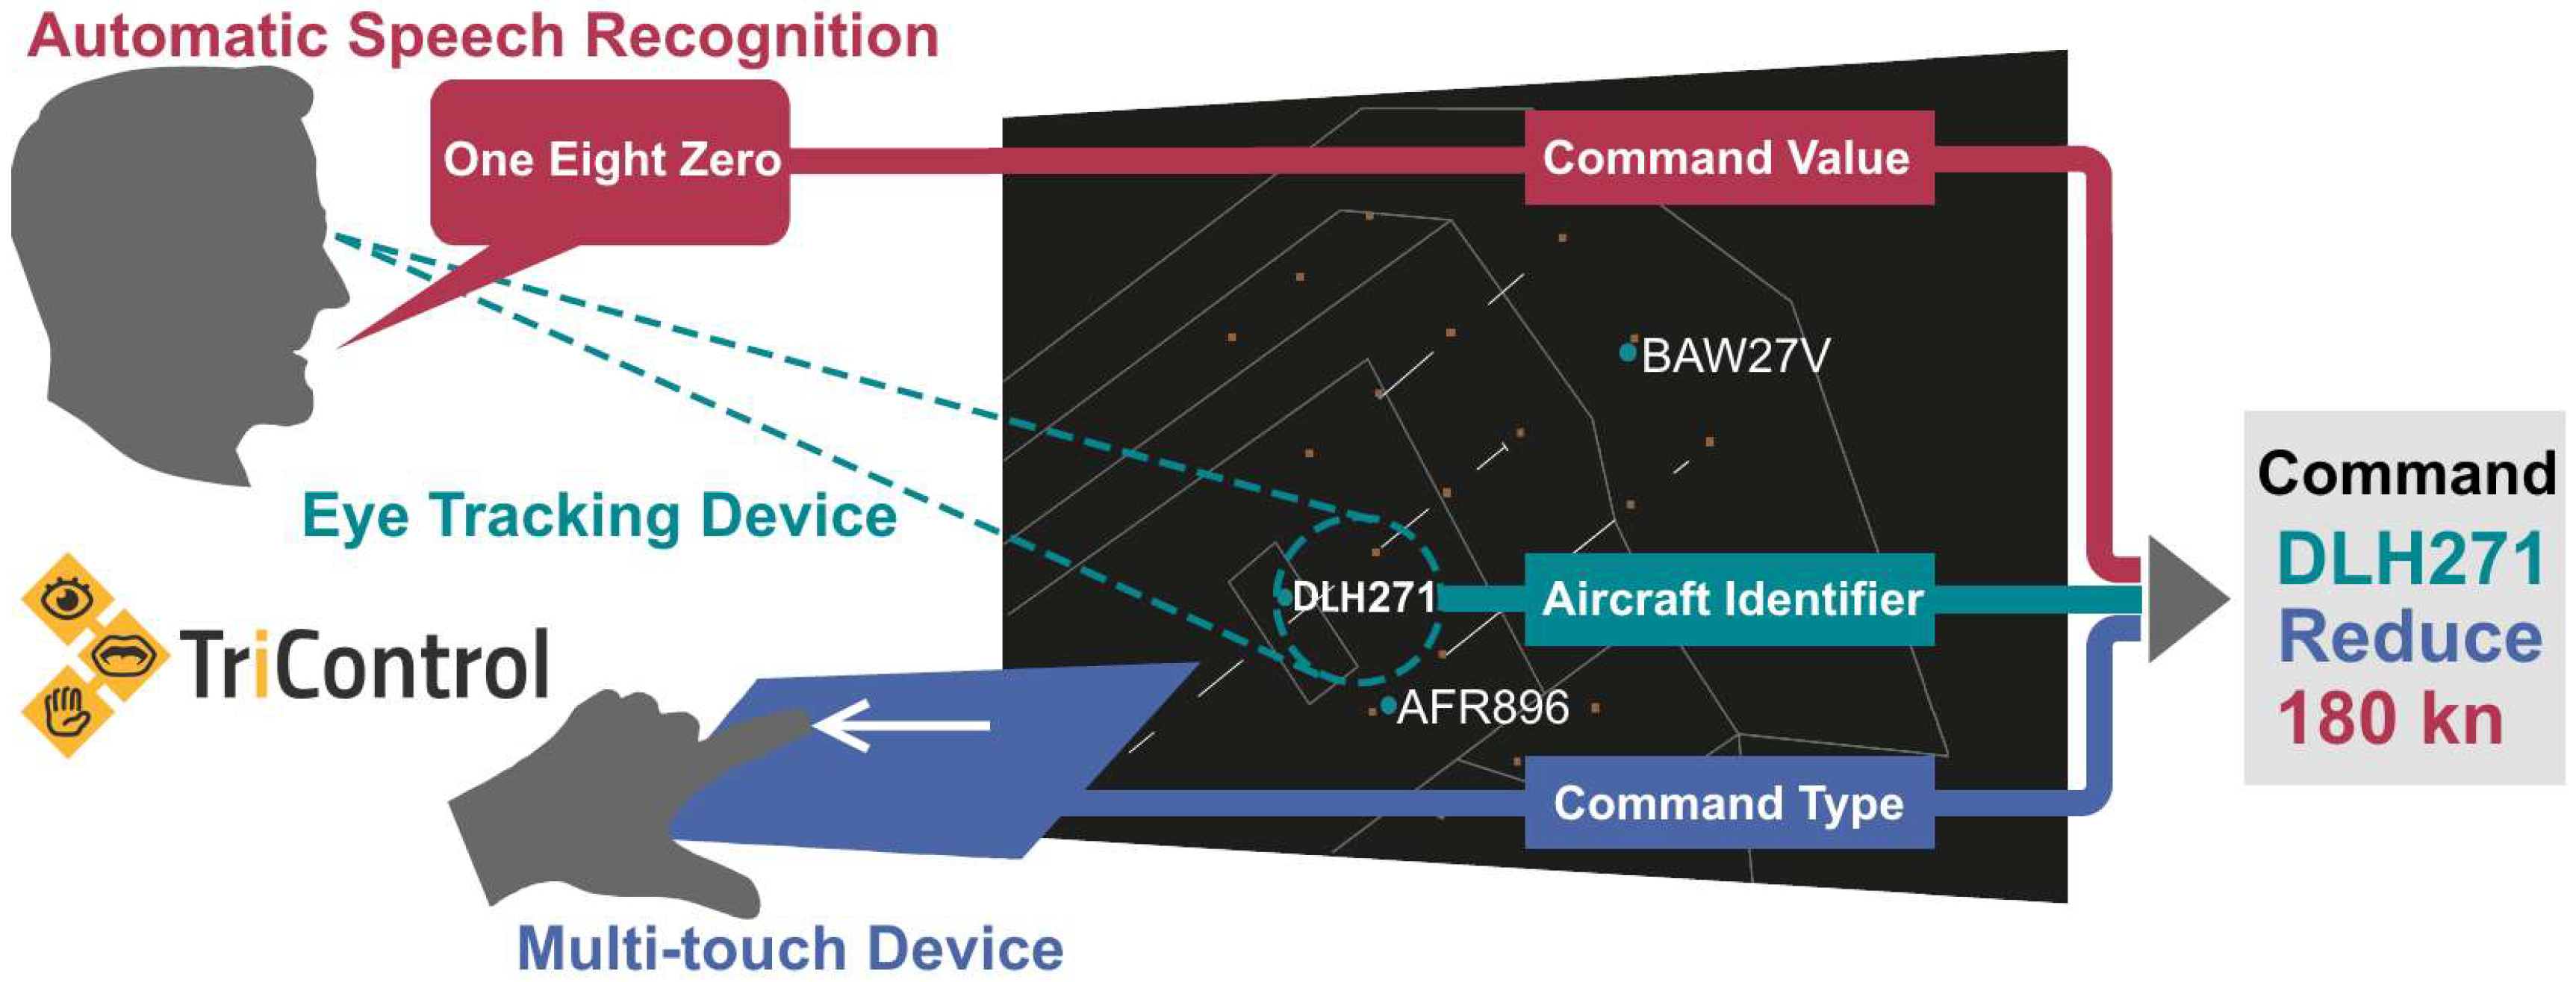 Aerospace Free Full Text Faster Command Input Using The Voice Recognition System And Embedded Controllers No